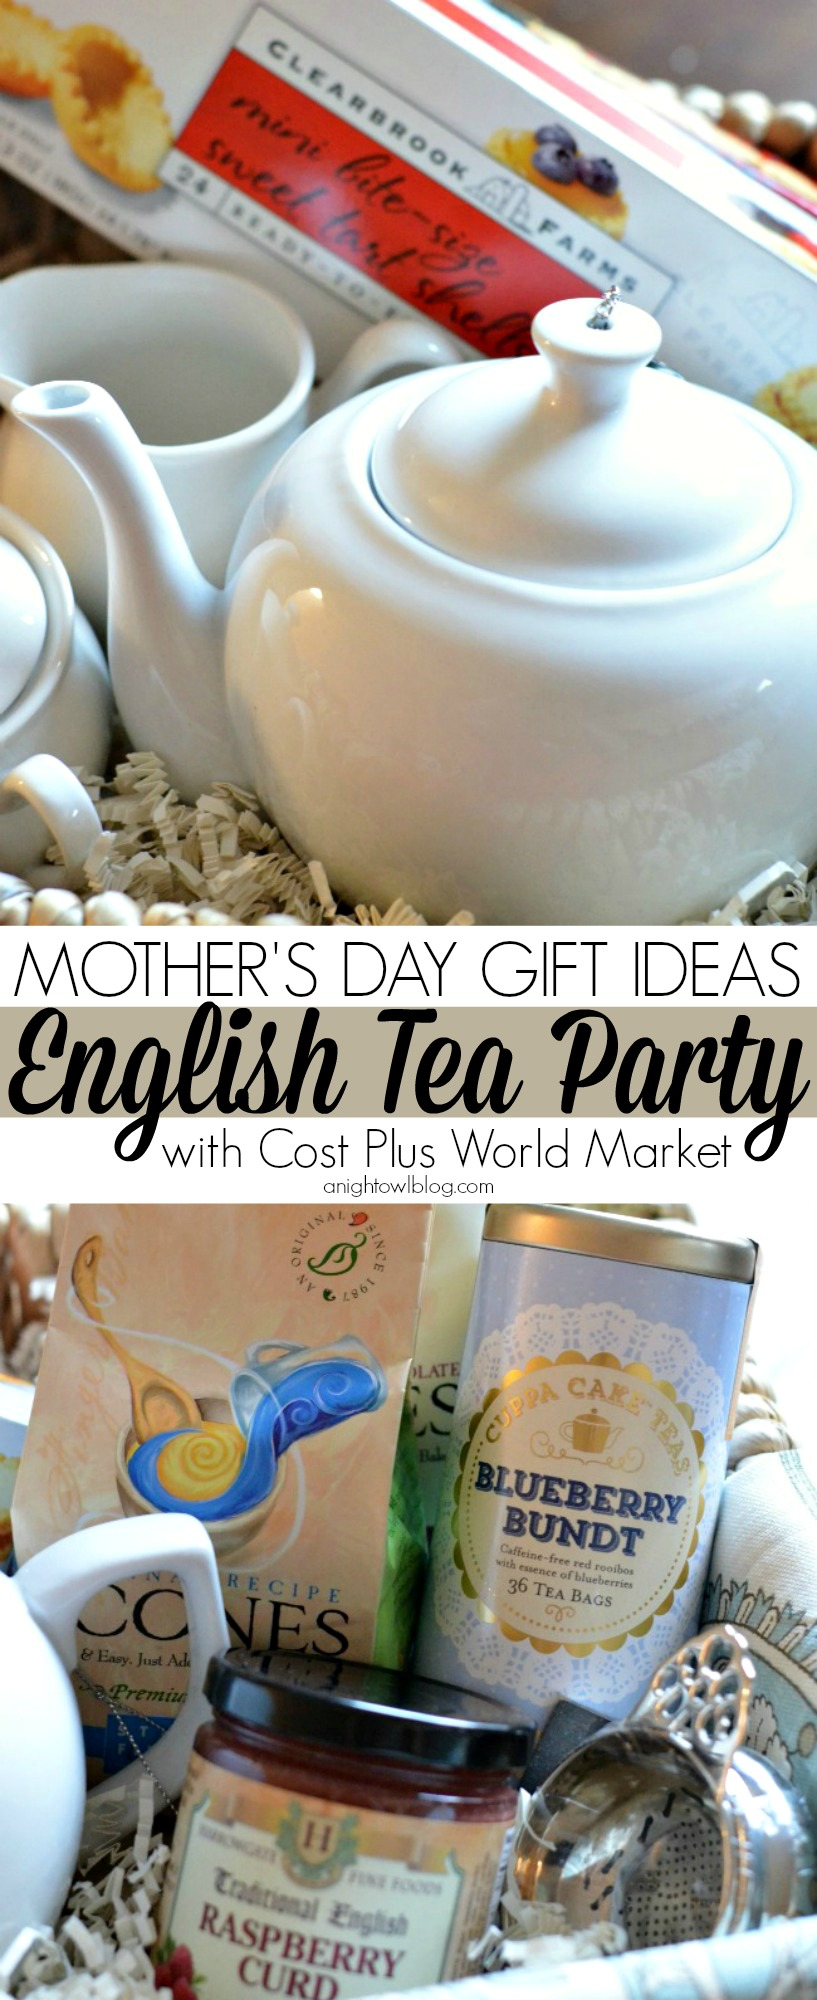 Mother's Day Gift Ideas - English Tea Party